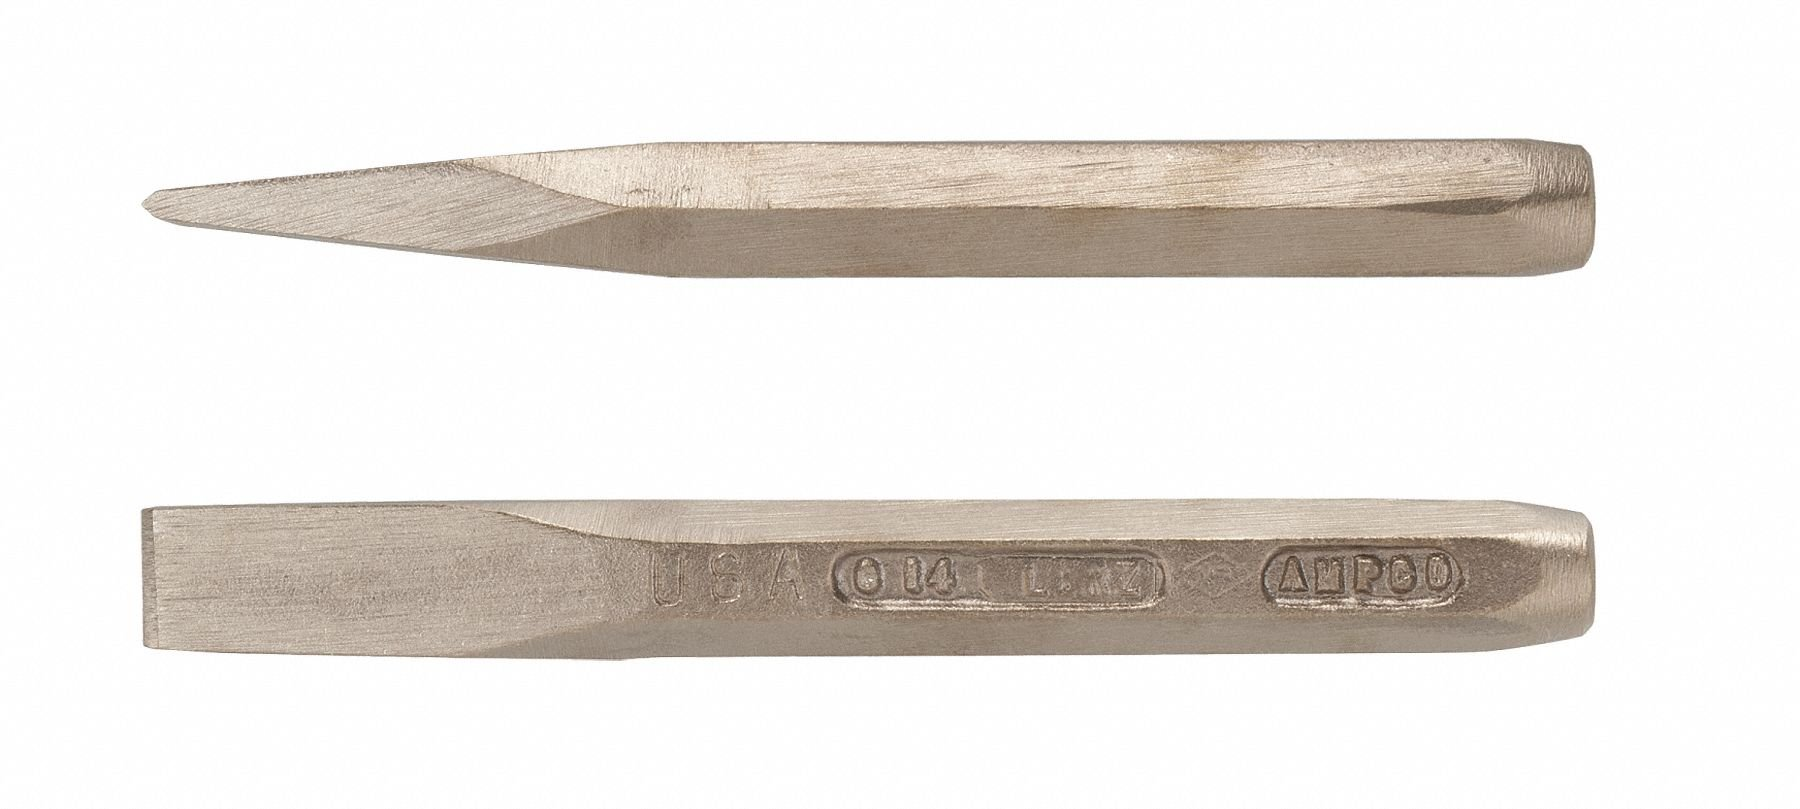 Ampco Safety Tools C-18 Chisel with Hand, Non-Sparking, Non-Magnetic, Corrosion Resistant, 1-1/16'', 9-1/4'' OAL